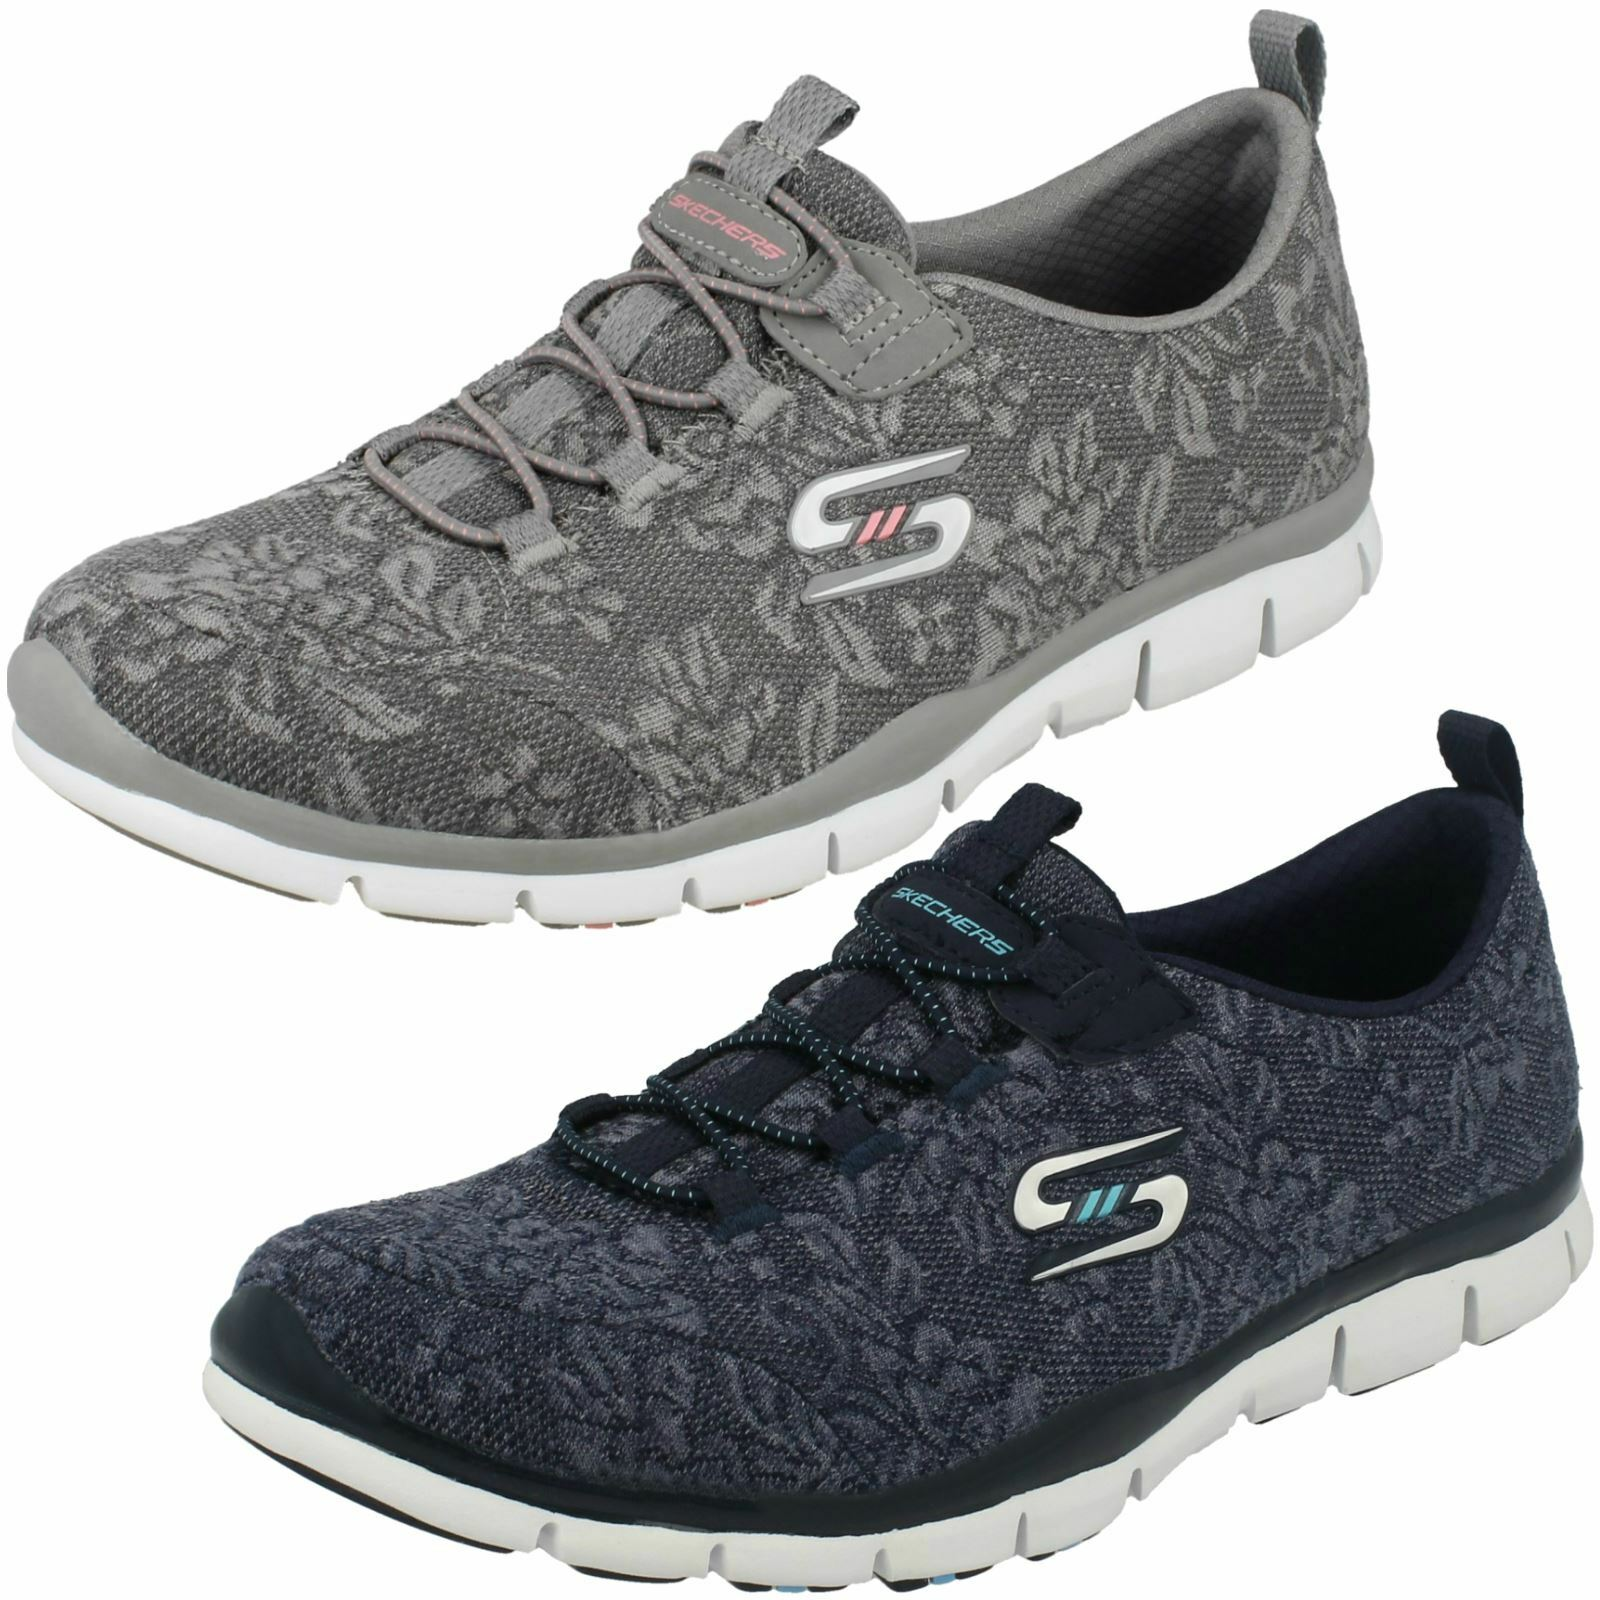 Skechers Ladies Lace Detail Trainers - Lacey 22764